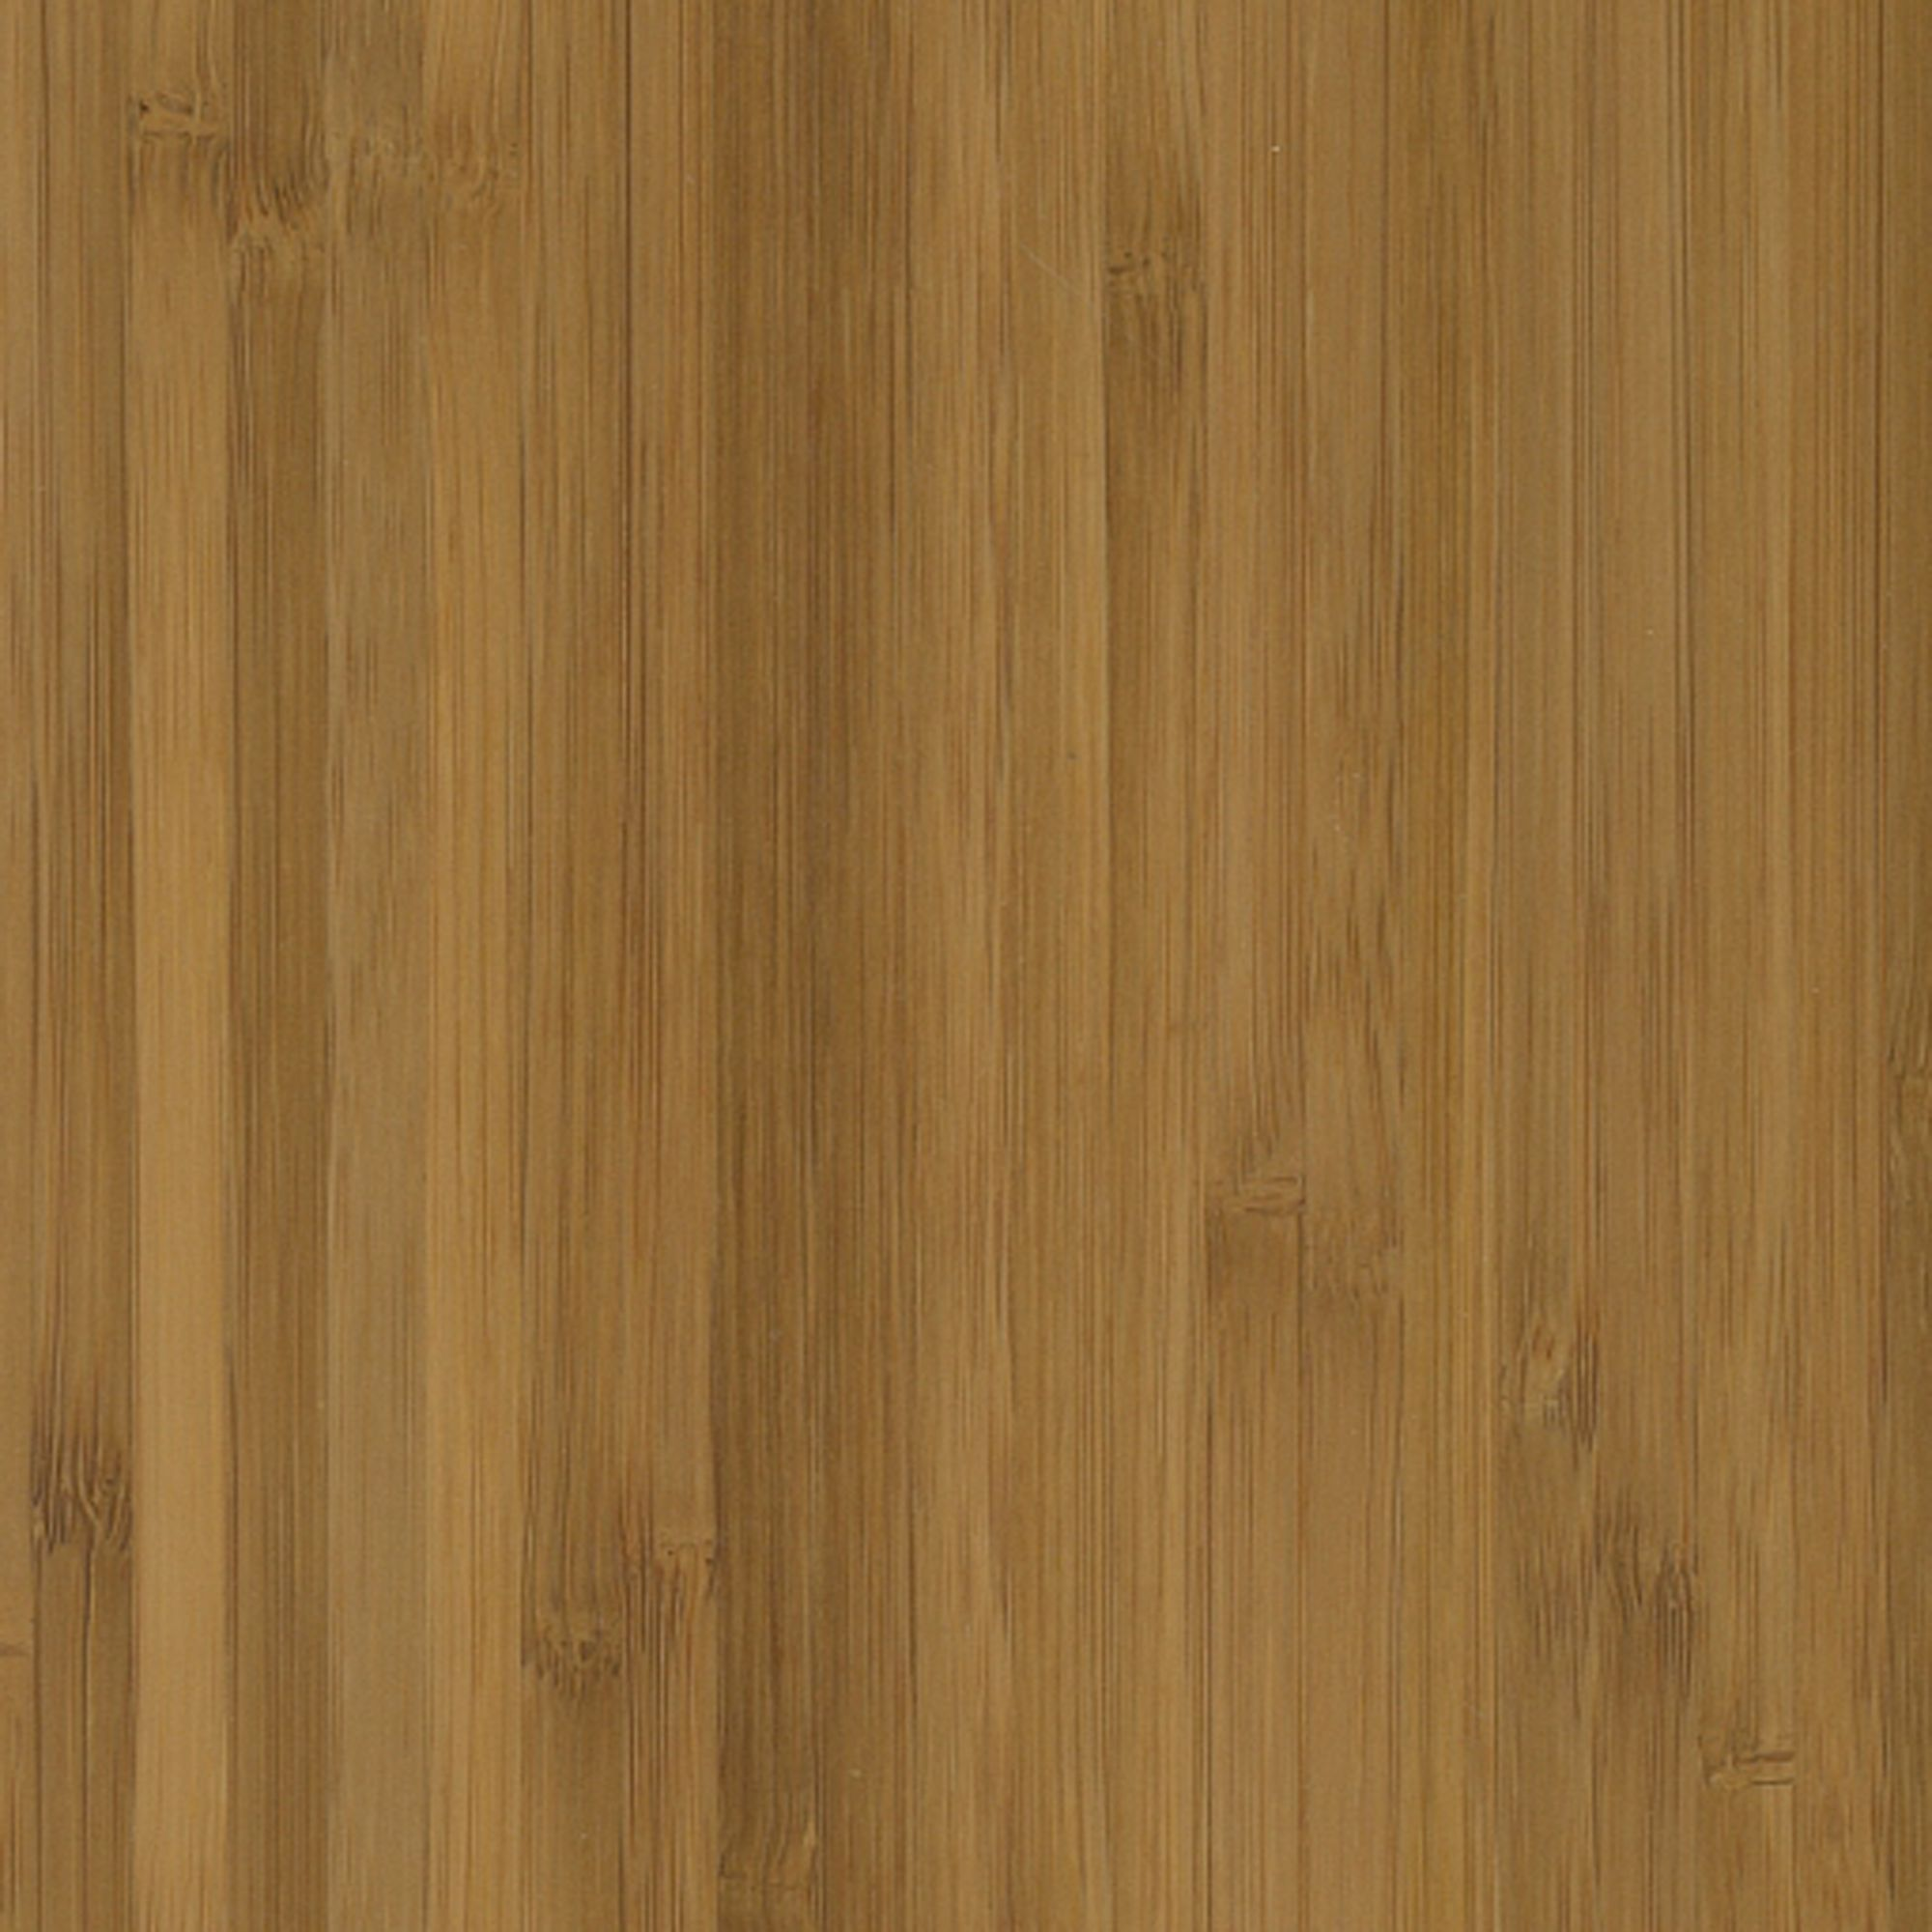 MOSO Engineered Board Side Pressed Lacquered TOPBAMBOO Floor Boards, Caramel, Pack of 12